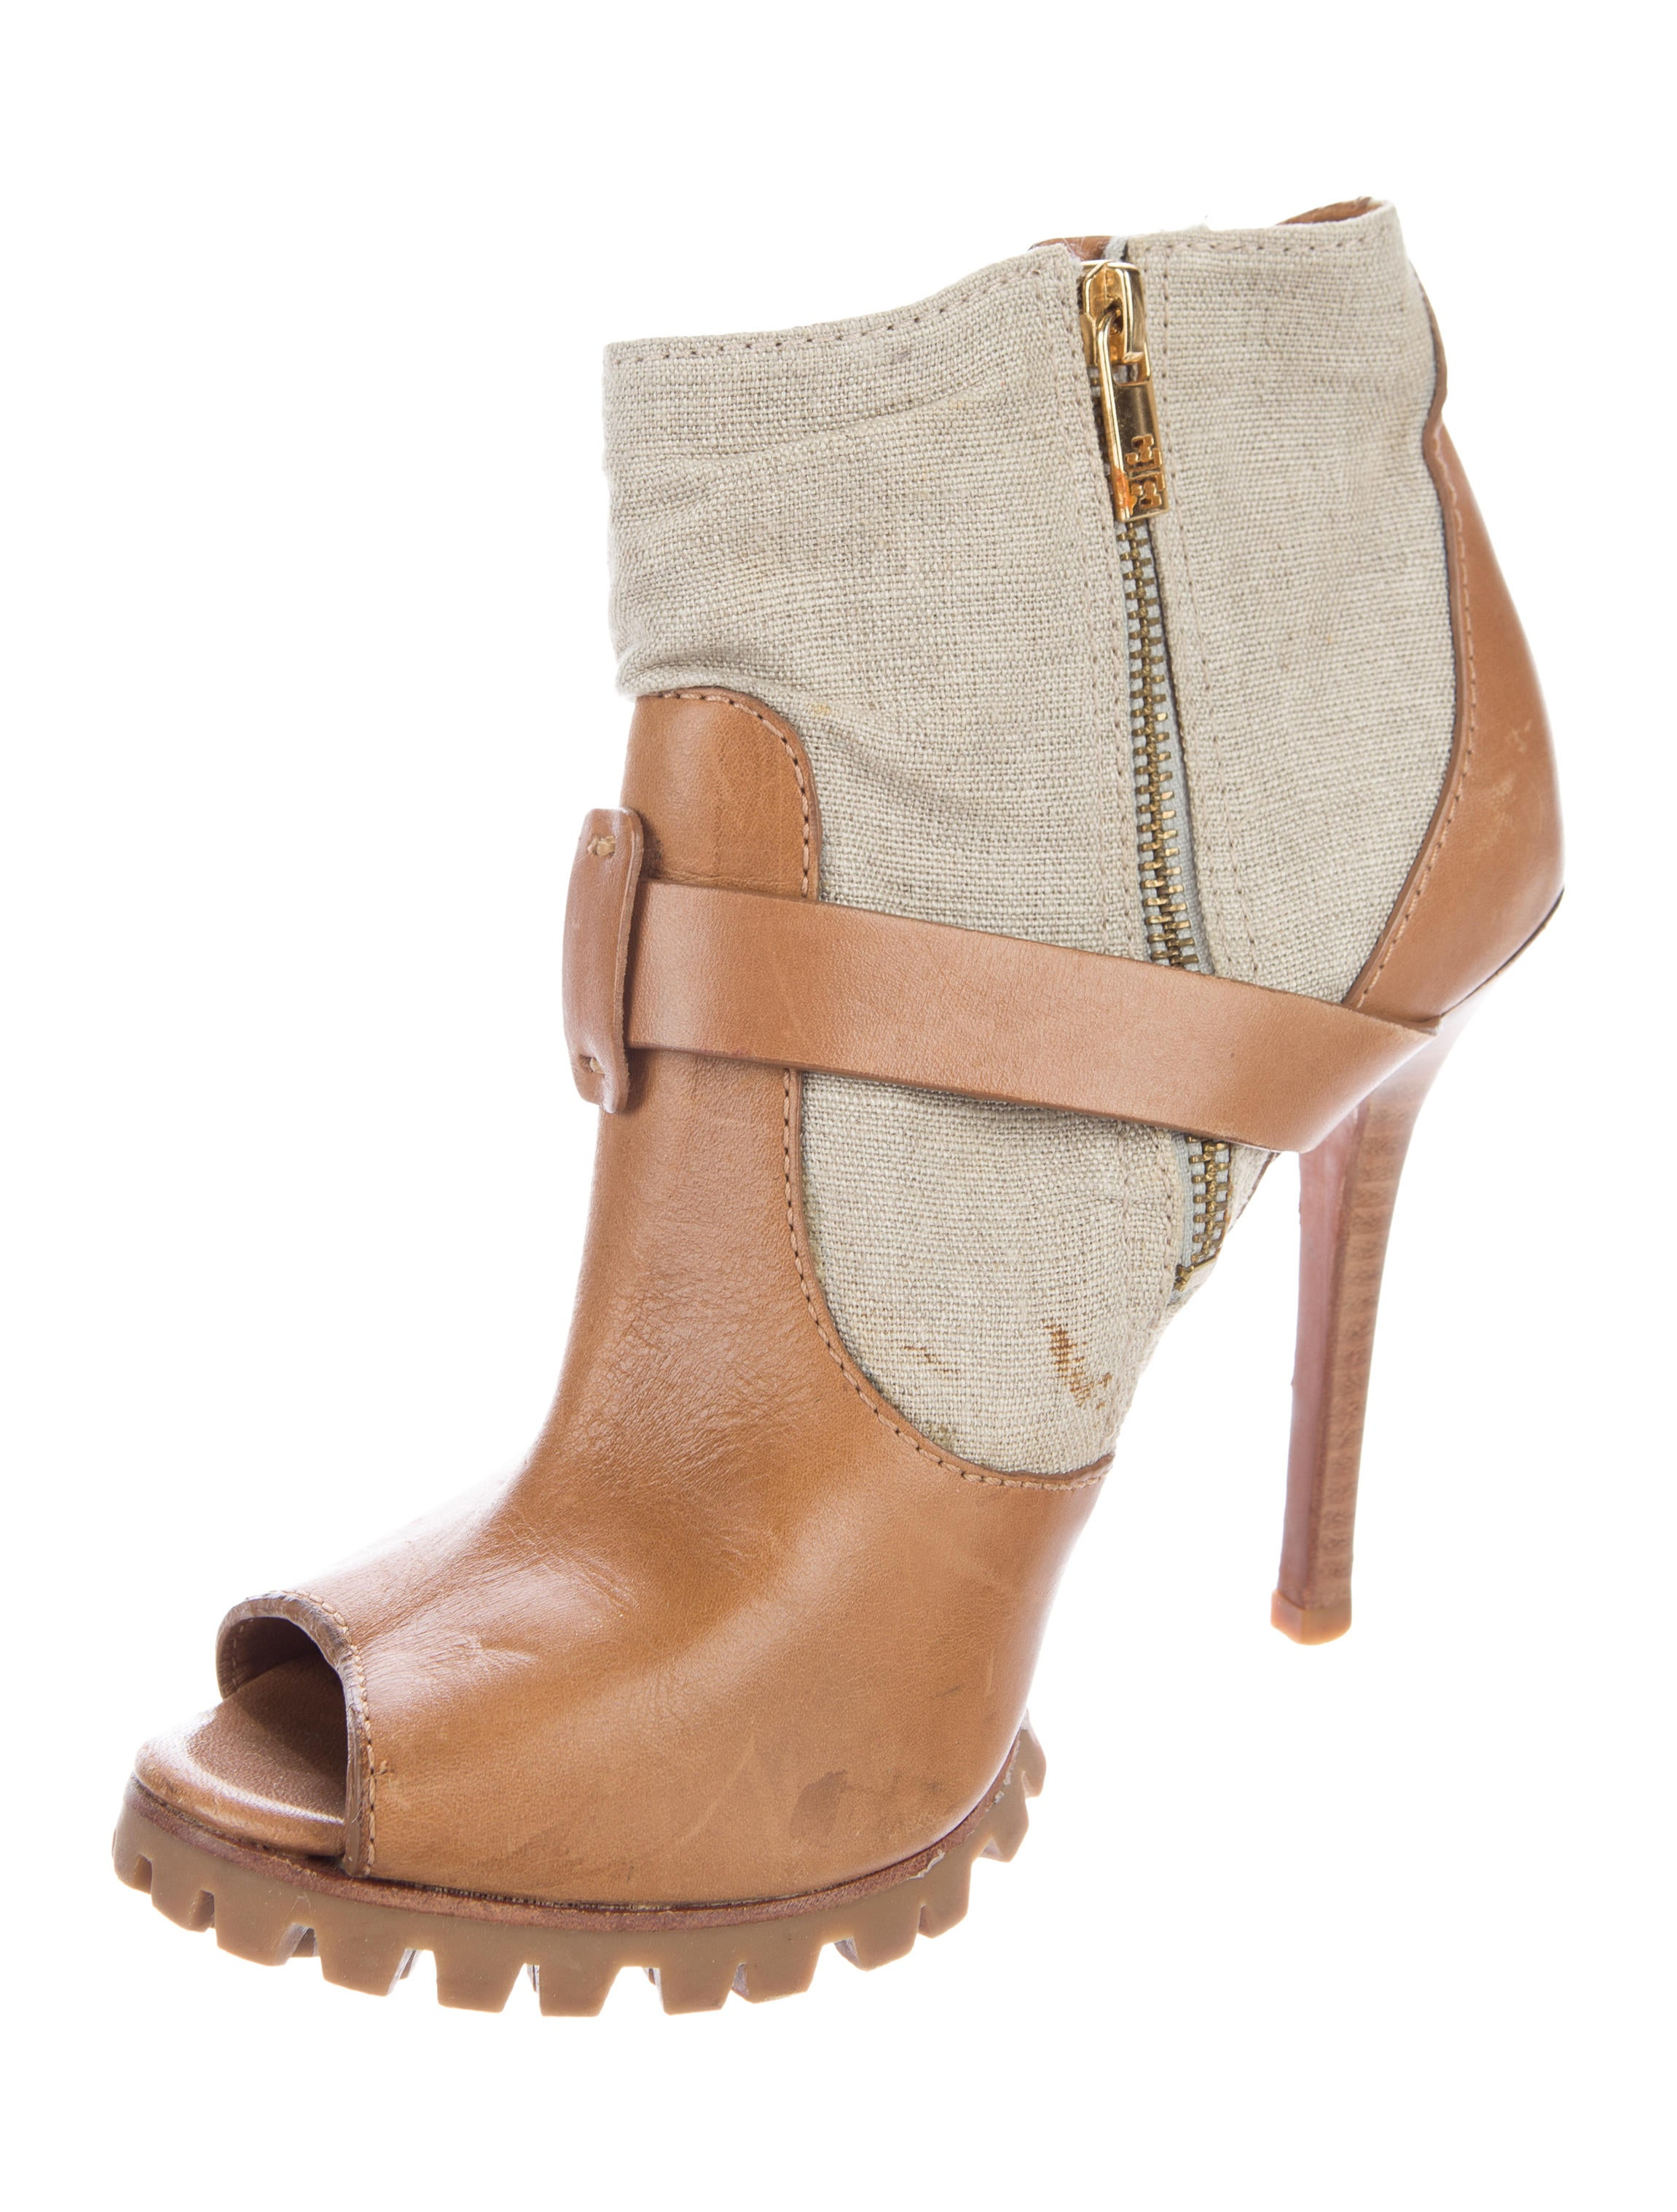 Peep Toe & Open Toe Booties | Charlotte Russe. Sort By: Apply. Showing (17 Items) Shoes / Boots & Booties / Open Toe Booties Peep Toe Ankle Strap Sandals Price $ BUY 1, GET 1 FOR $ Bamboo Double Buckle Booties Qupid Laser Cut Buckled Ankle Boots Price $ BUY 1, GET 1 FOR $ Open Toe Booties Price $